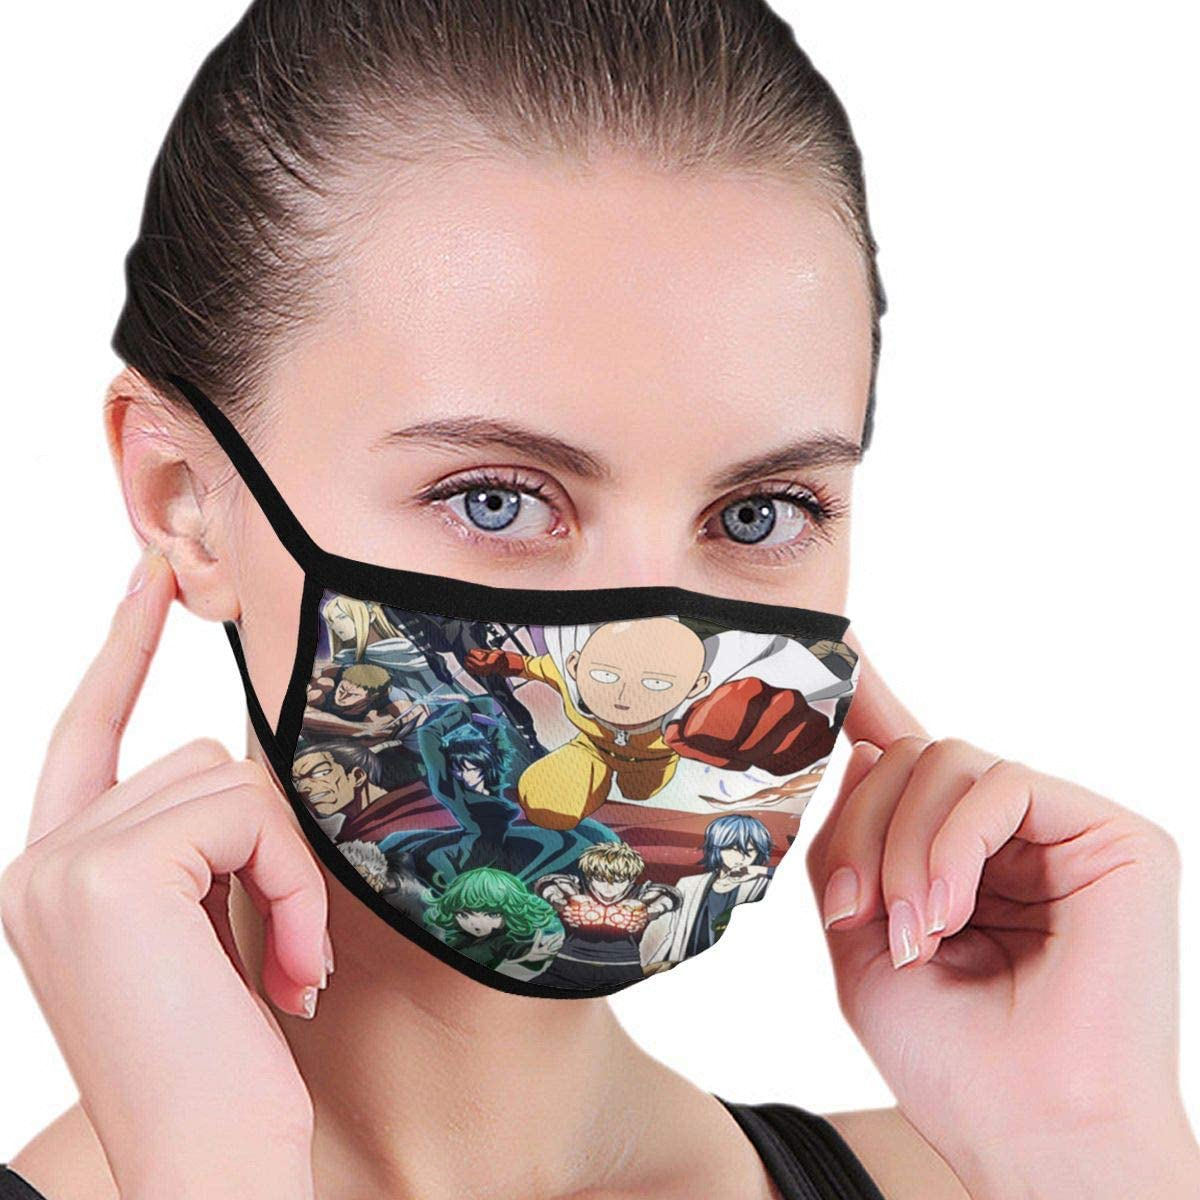 Wehoiweh One Punch Man Dust Prevention Face Cover Mouth Cover Bandana Cool Lightweight